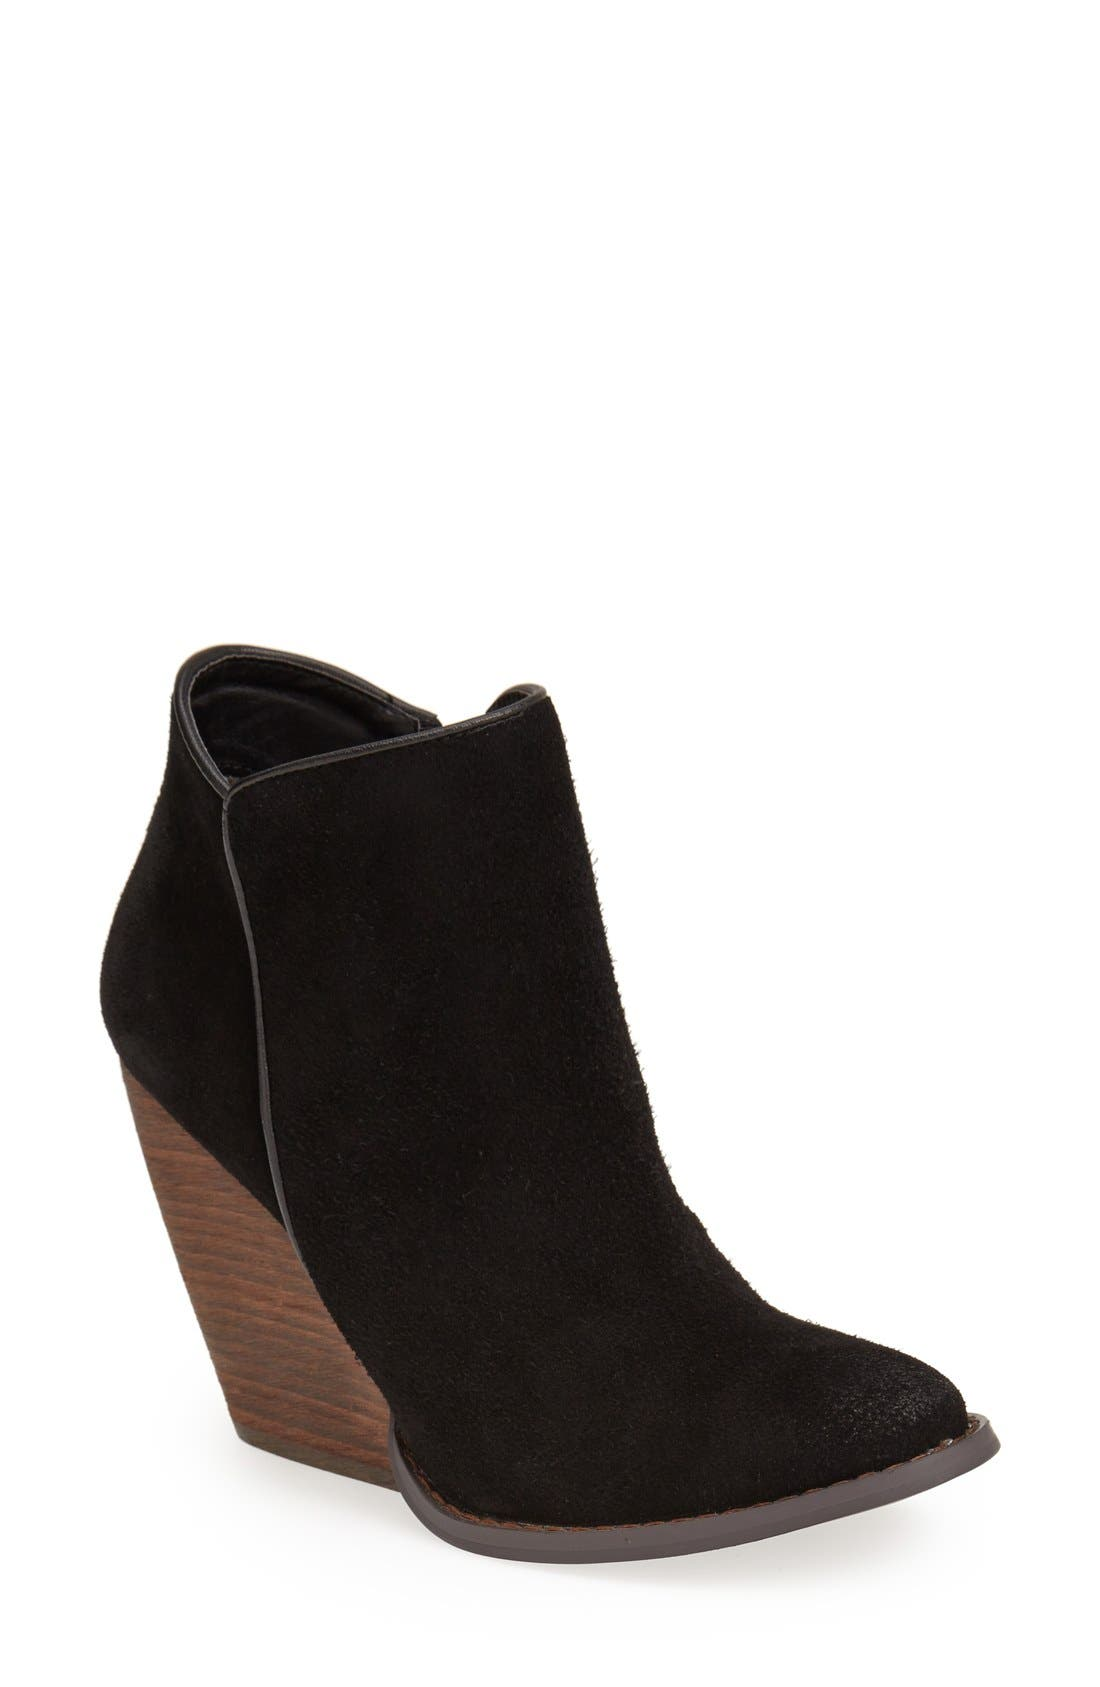 'Whitby' Demi Wedge Bootie,                             Main thumbnail 1, color,                             001